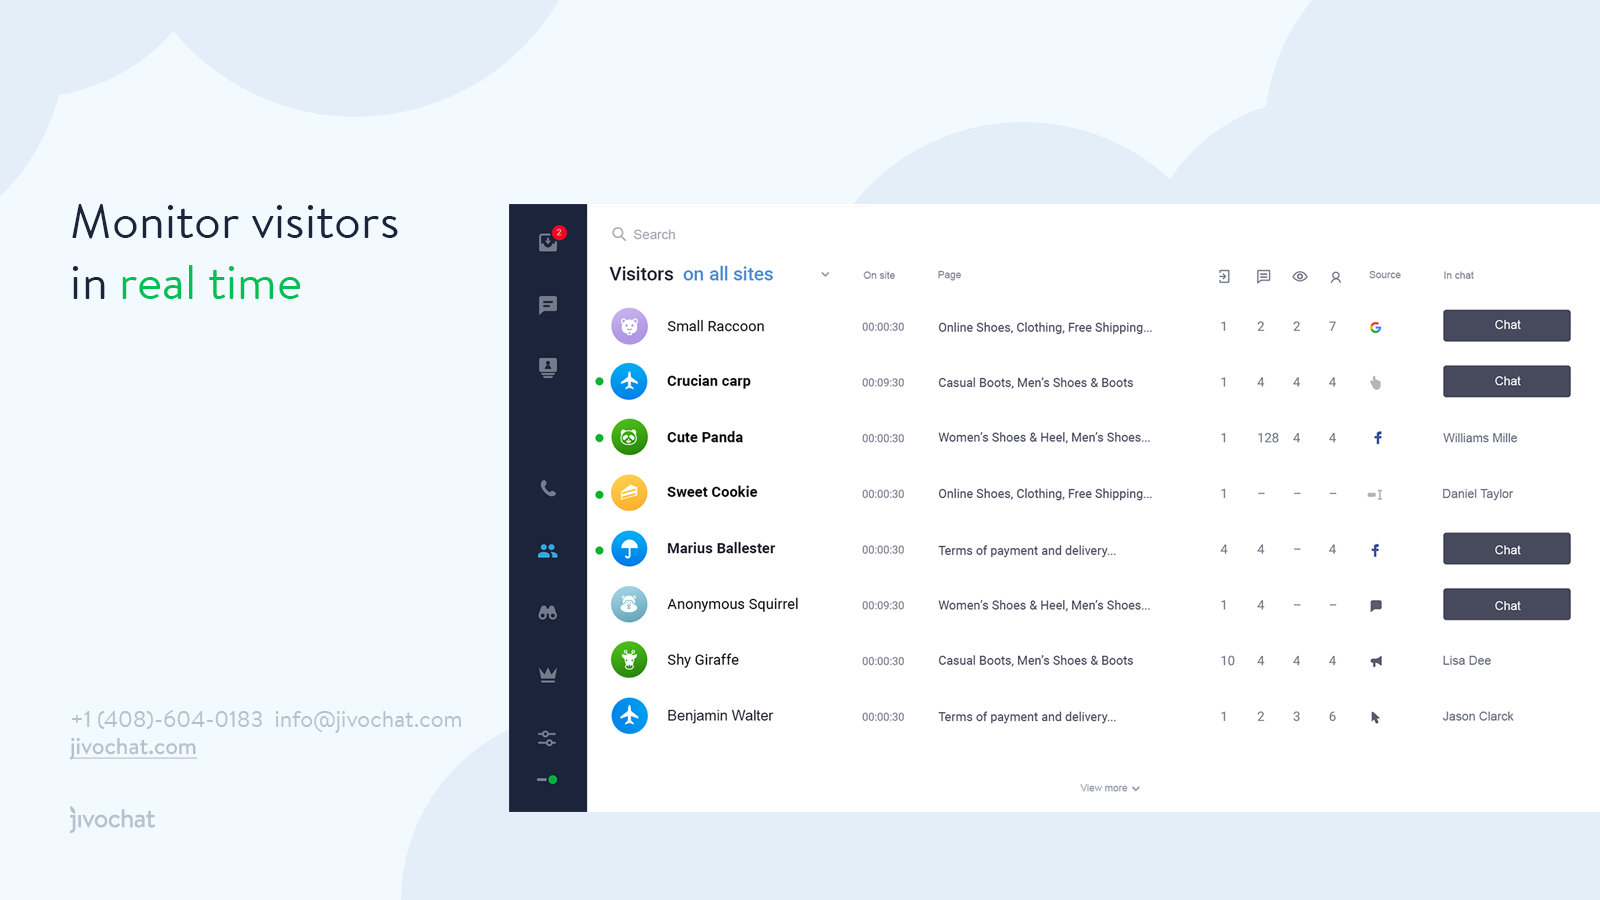 JivoChat Real-time Visitor Monitoring for Shopify